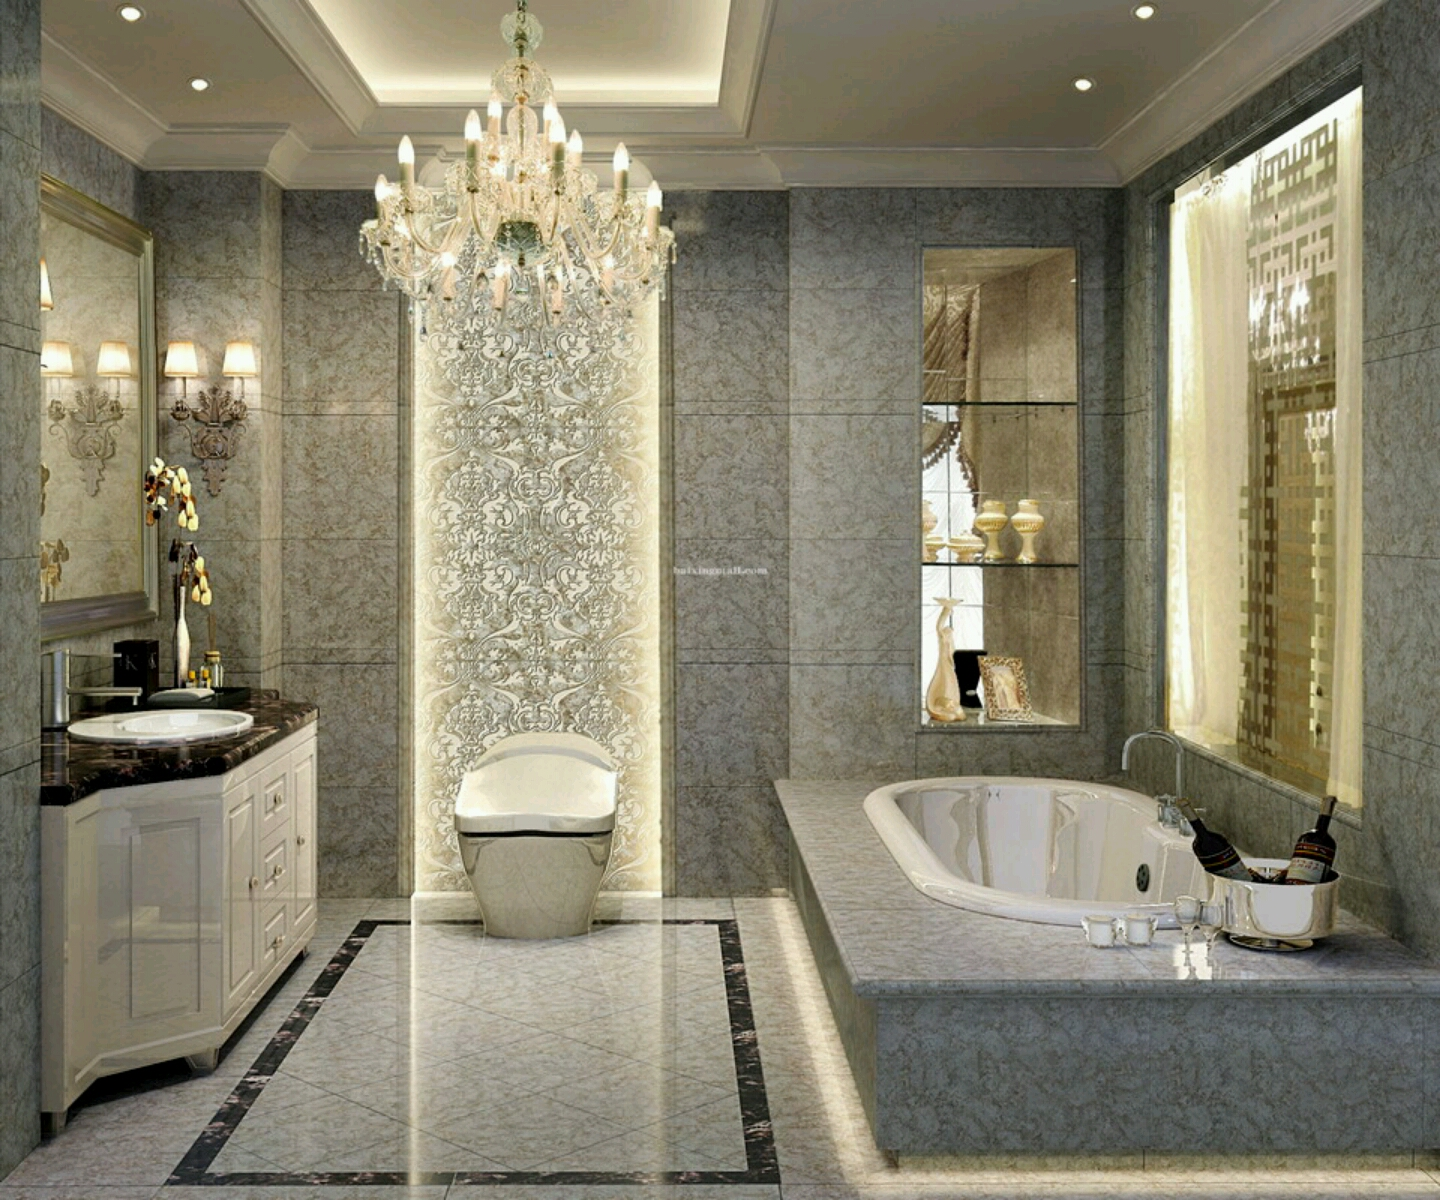 Bathroom Design Pictures Prepossessing Of Luxury Bathrooms Ideas Images